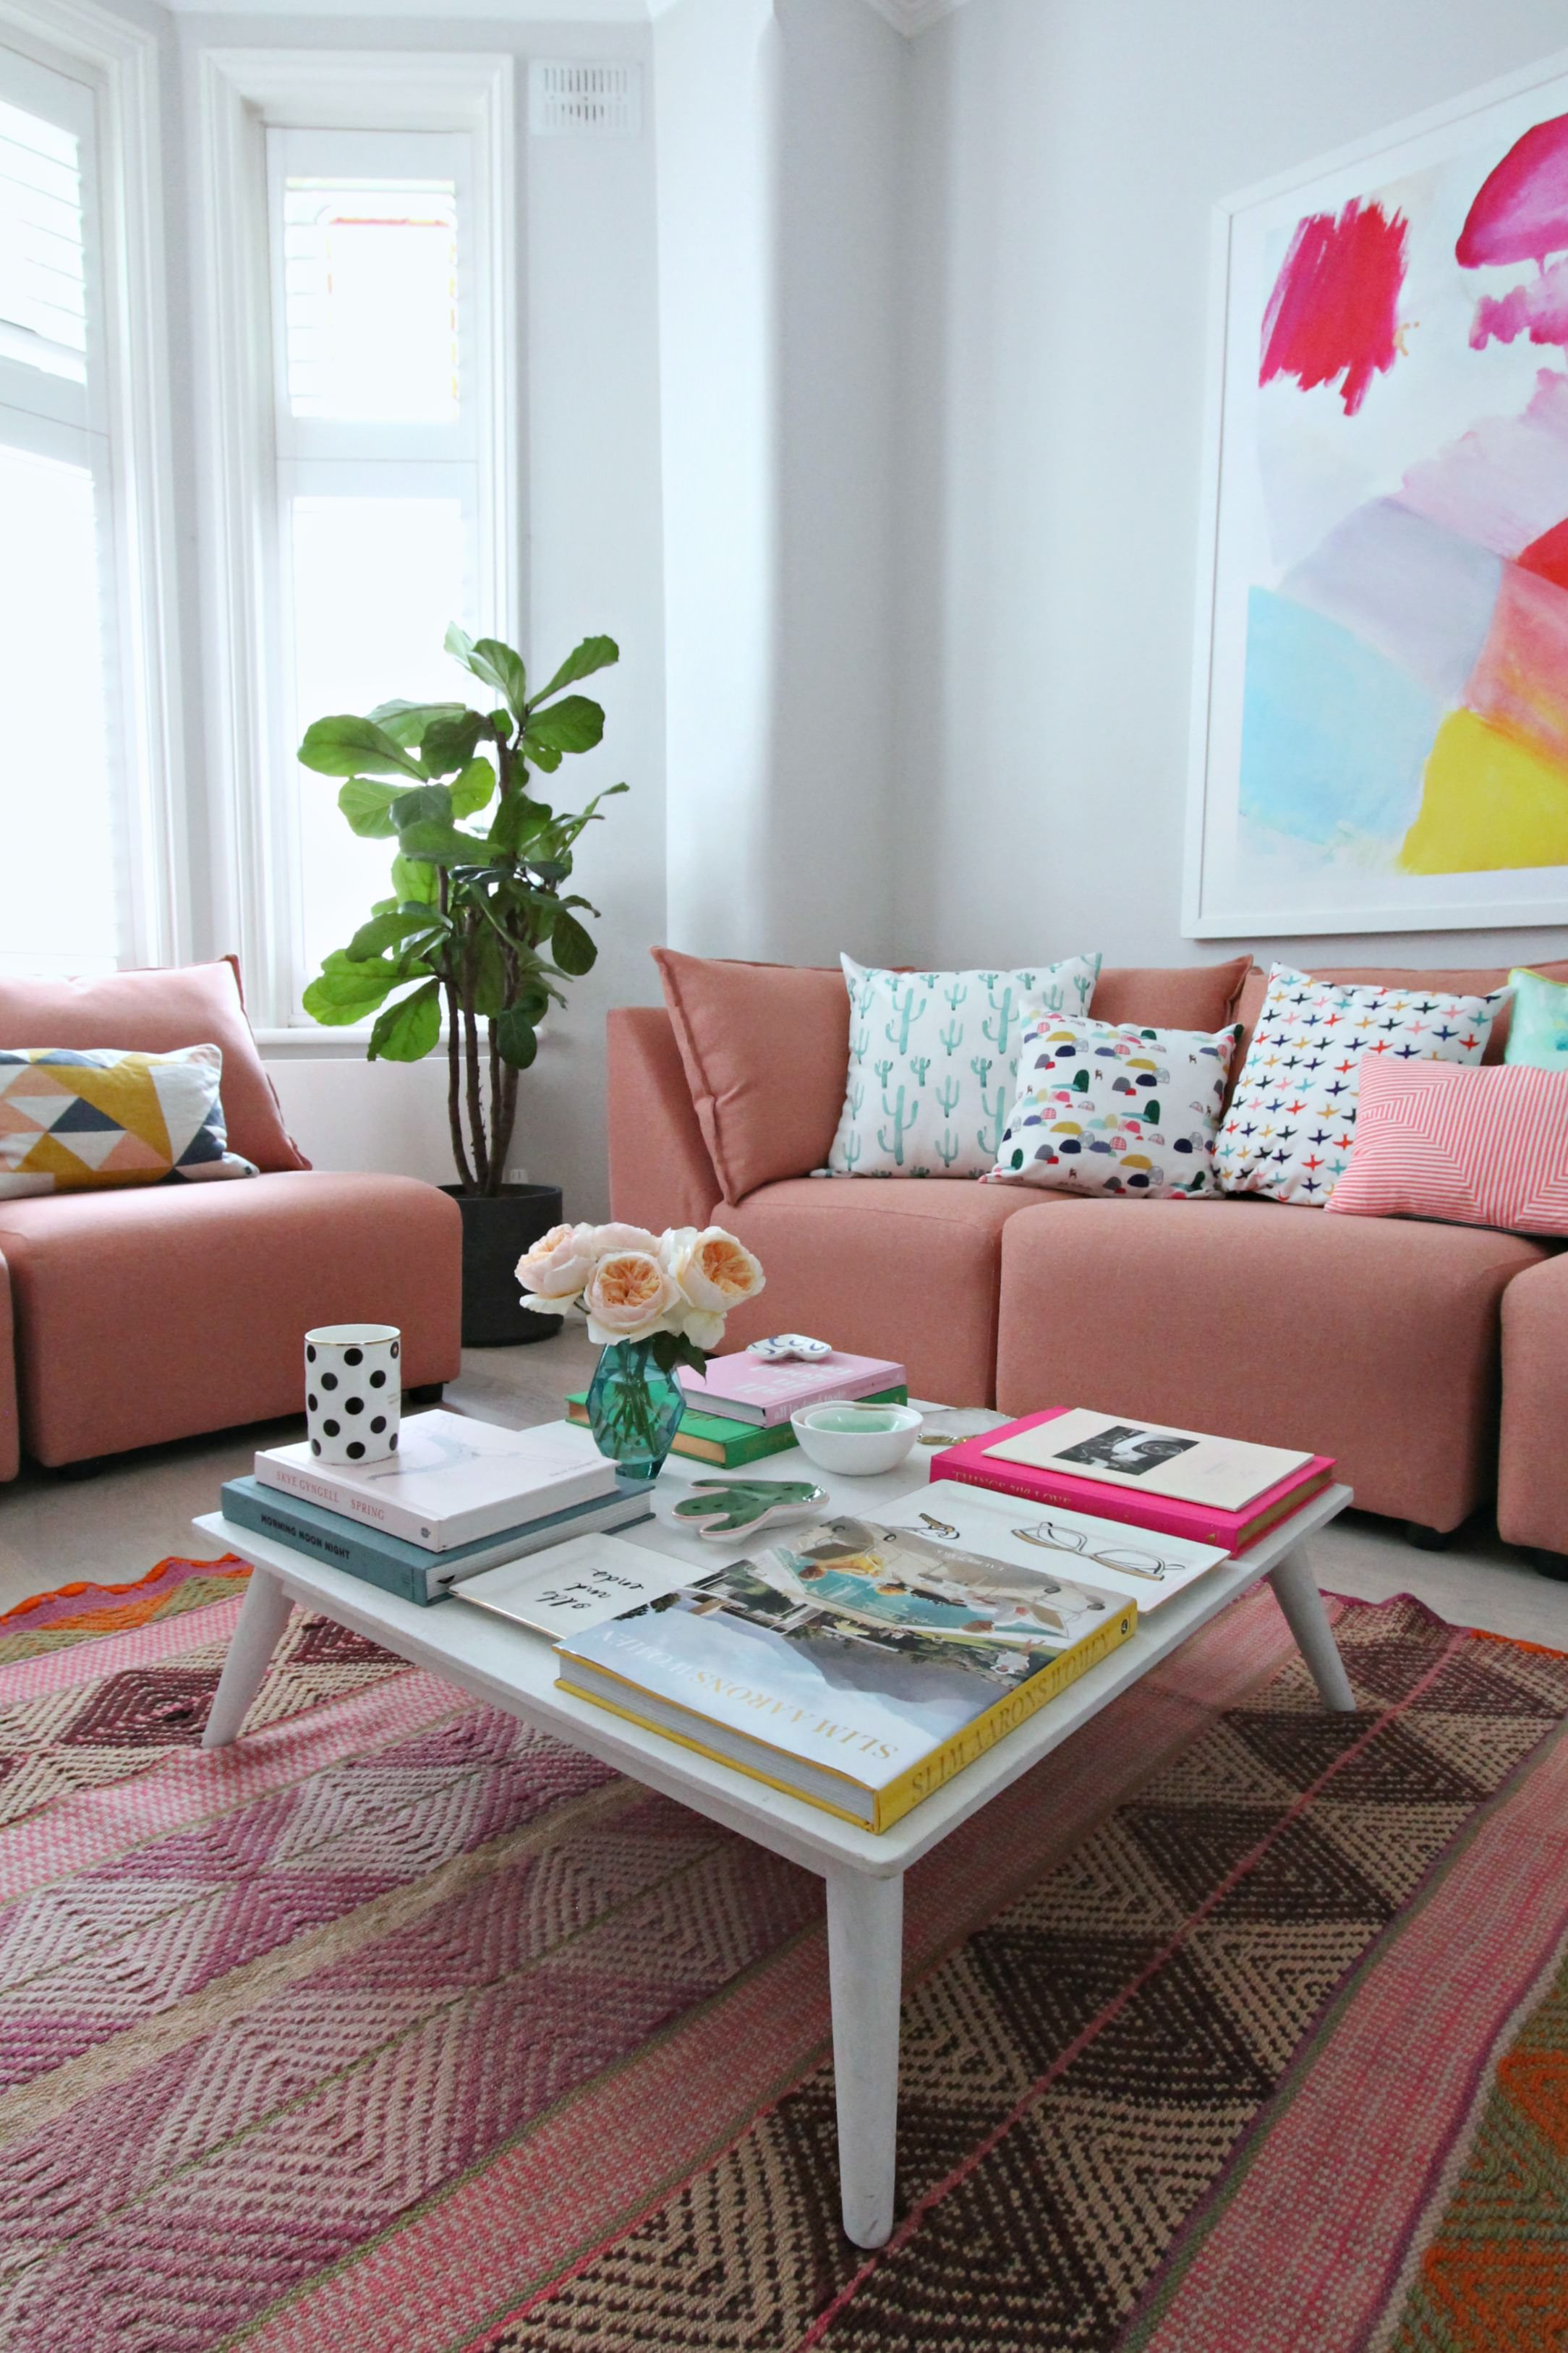 living room, grey floor, pink patterned rug, pink sofa, white wall, white coffee table